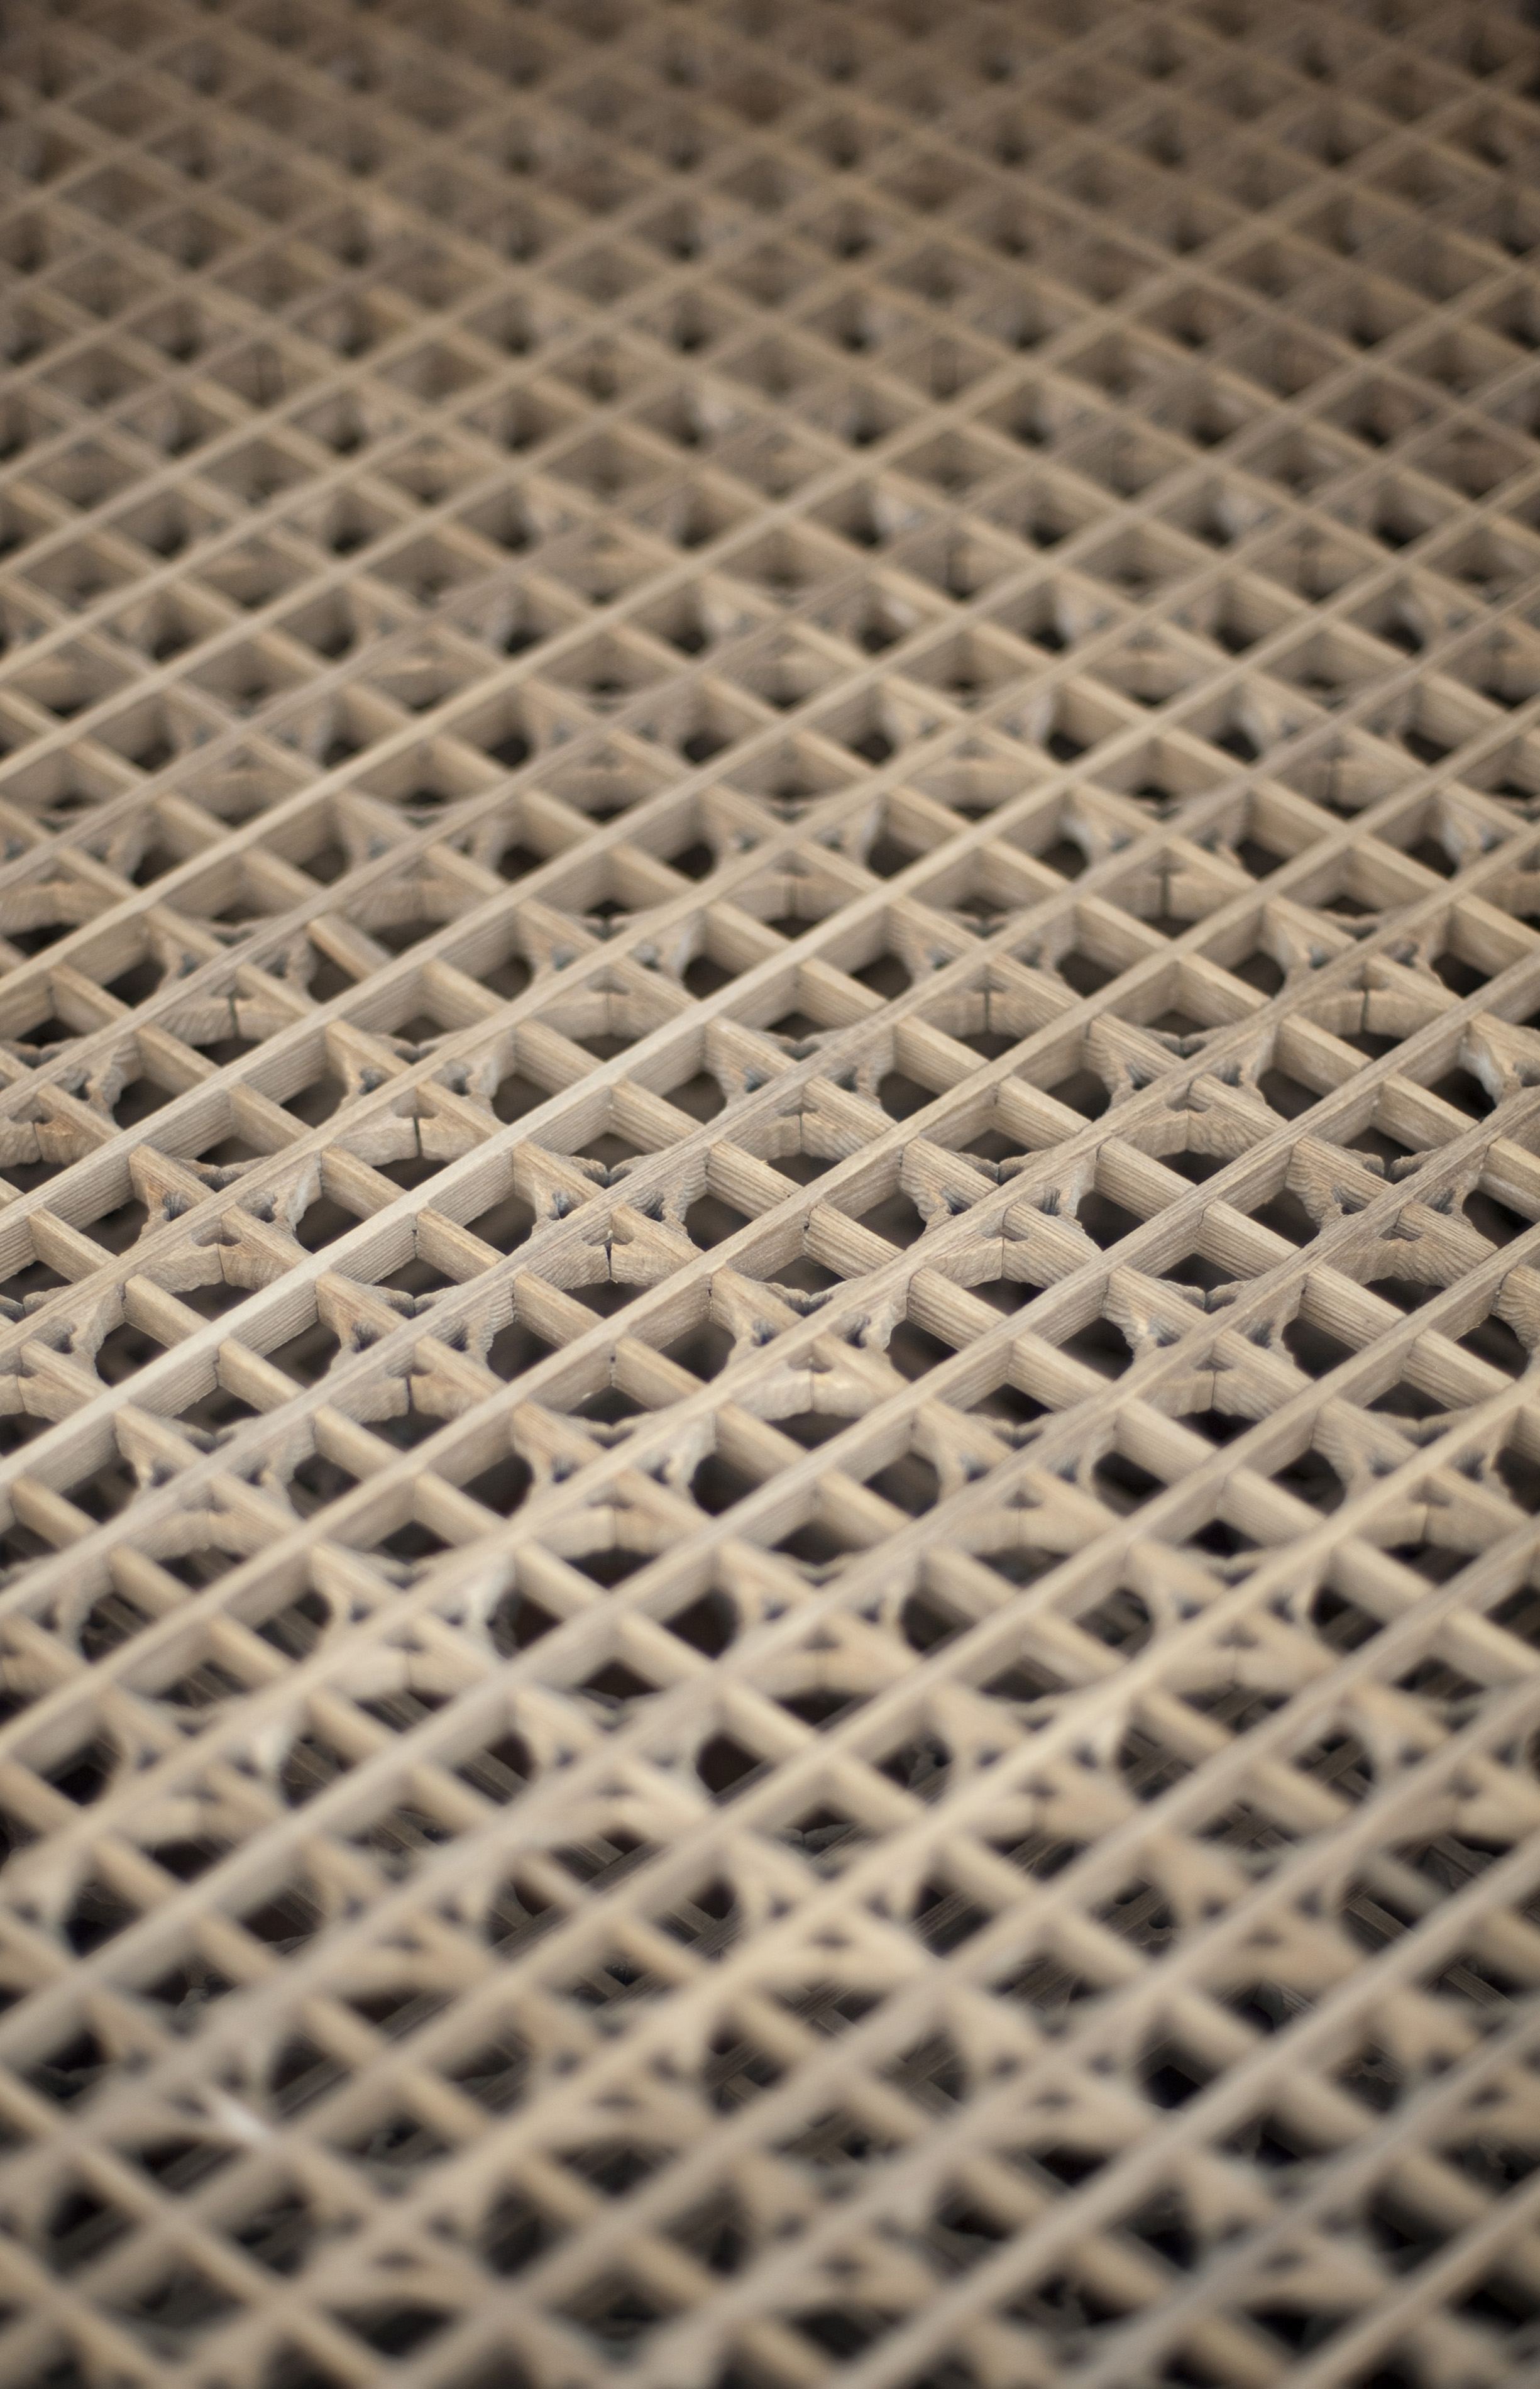 Wooden lattice with a diamond pattern viewed from a high angle with shallow dof on a receding perspective